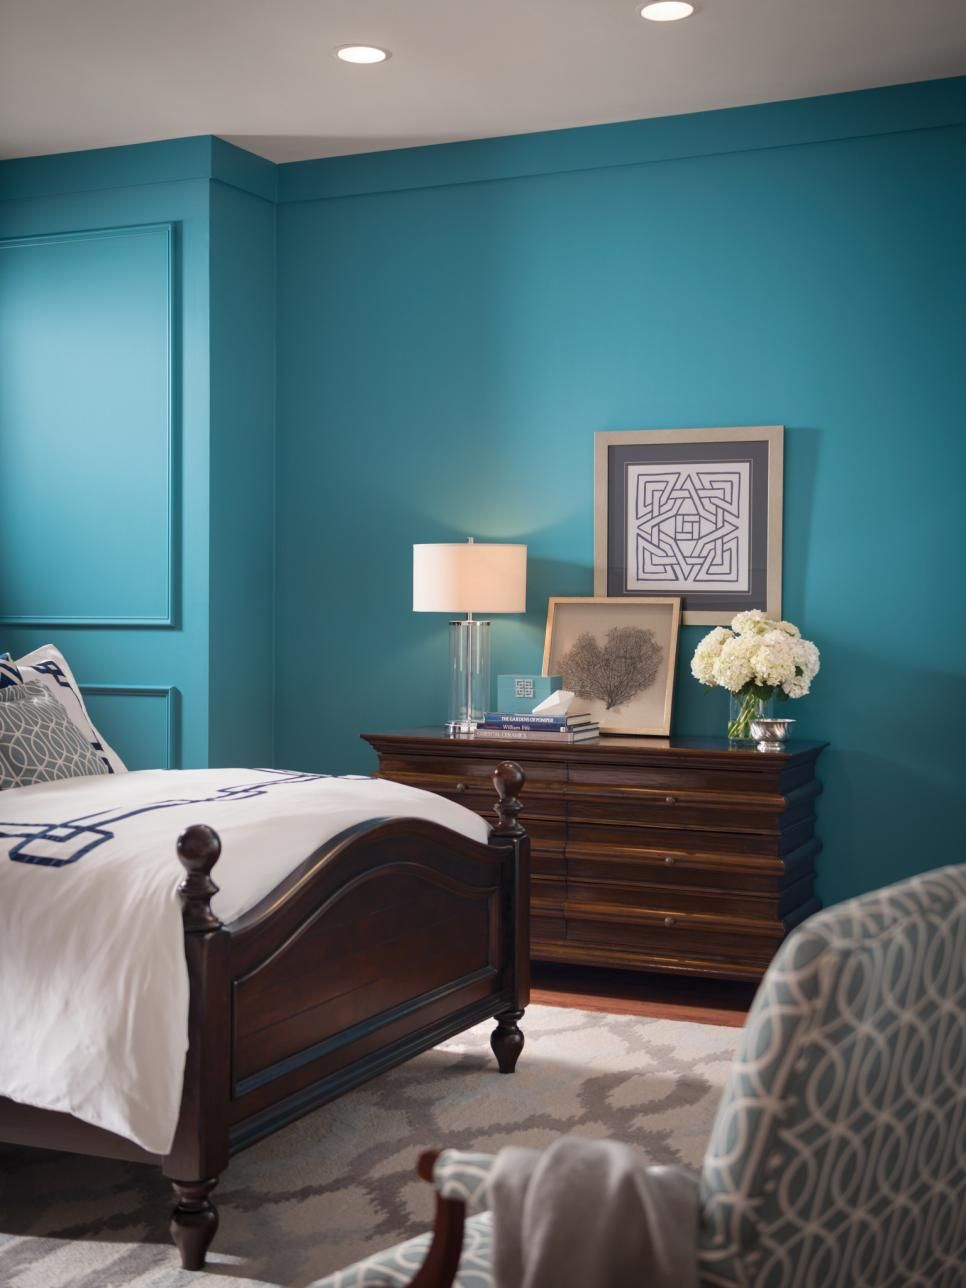 Make Any Space Pop With SW 6494 Lakeshore. The Vibrant Color Will Liven Up  Any Room. Include Accents Such As A Glass Lamp And Clean White Bedding To  Bring ...